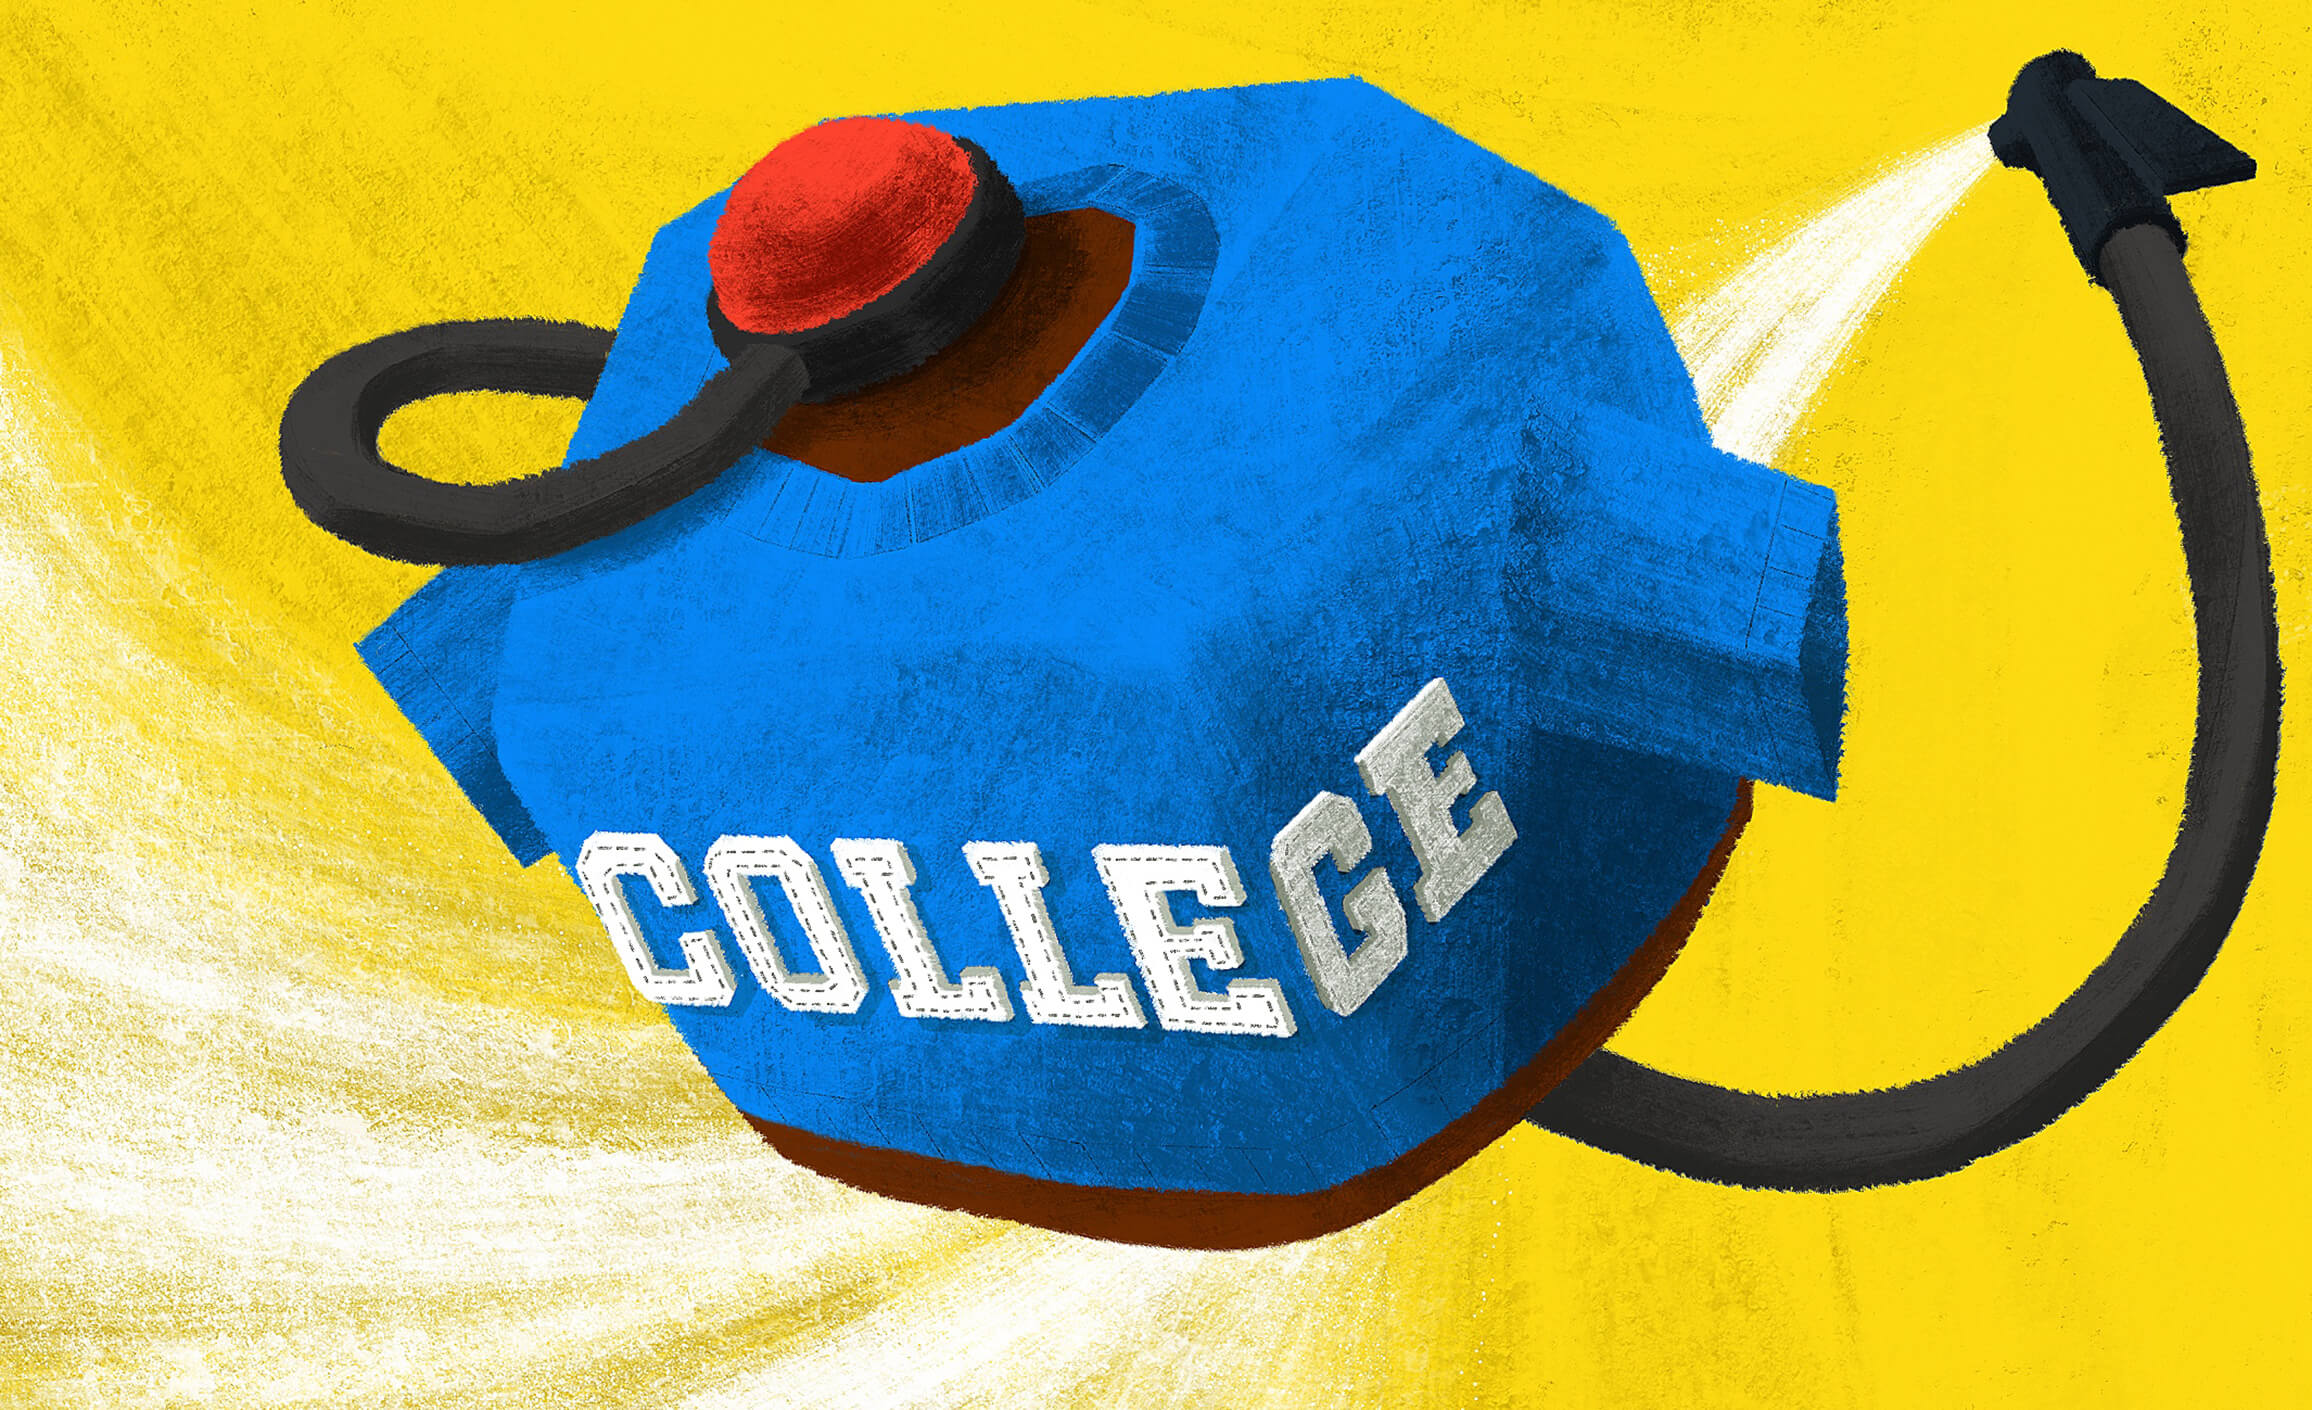 Alma Malster: What Brewers Drank in College